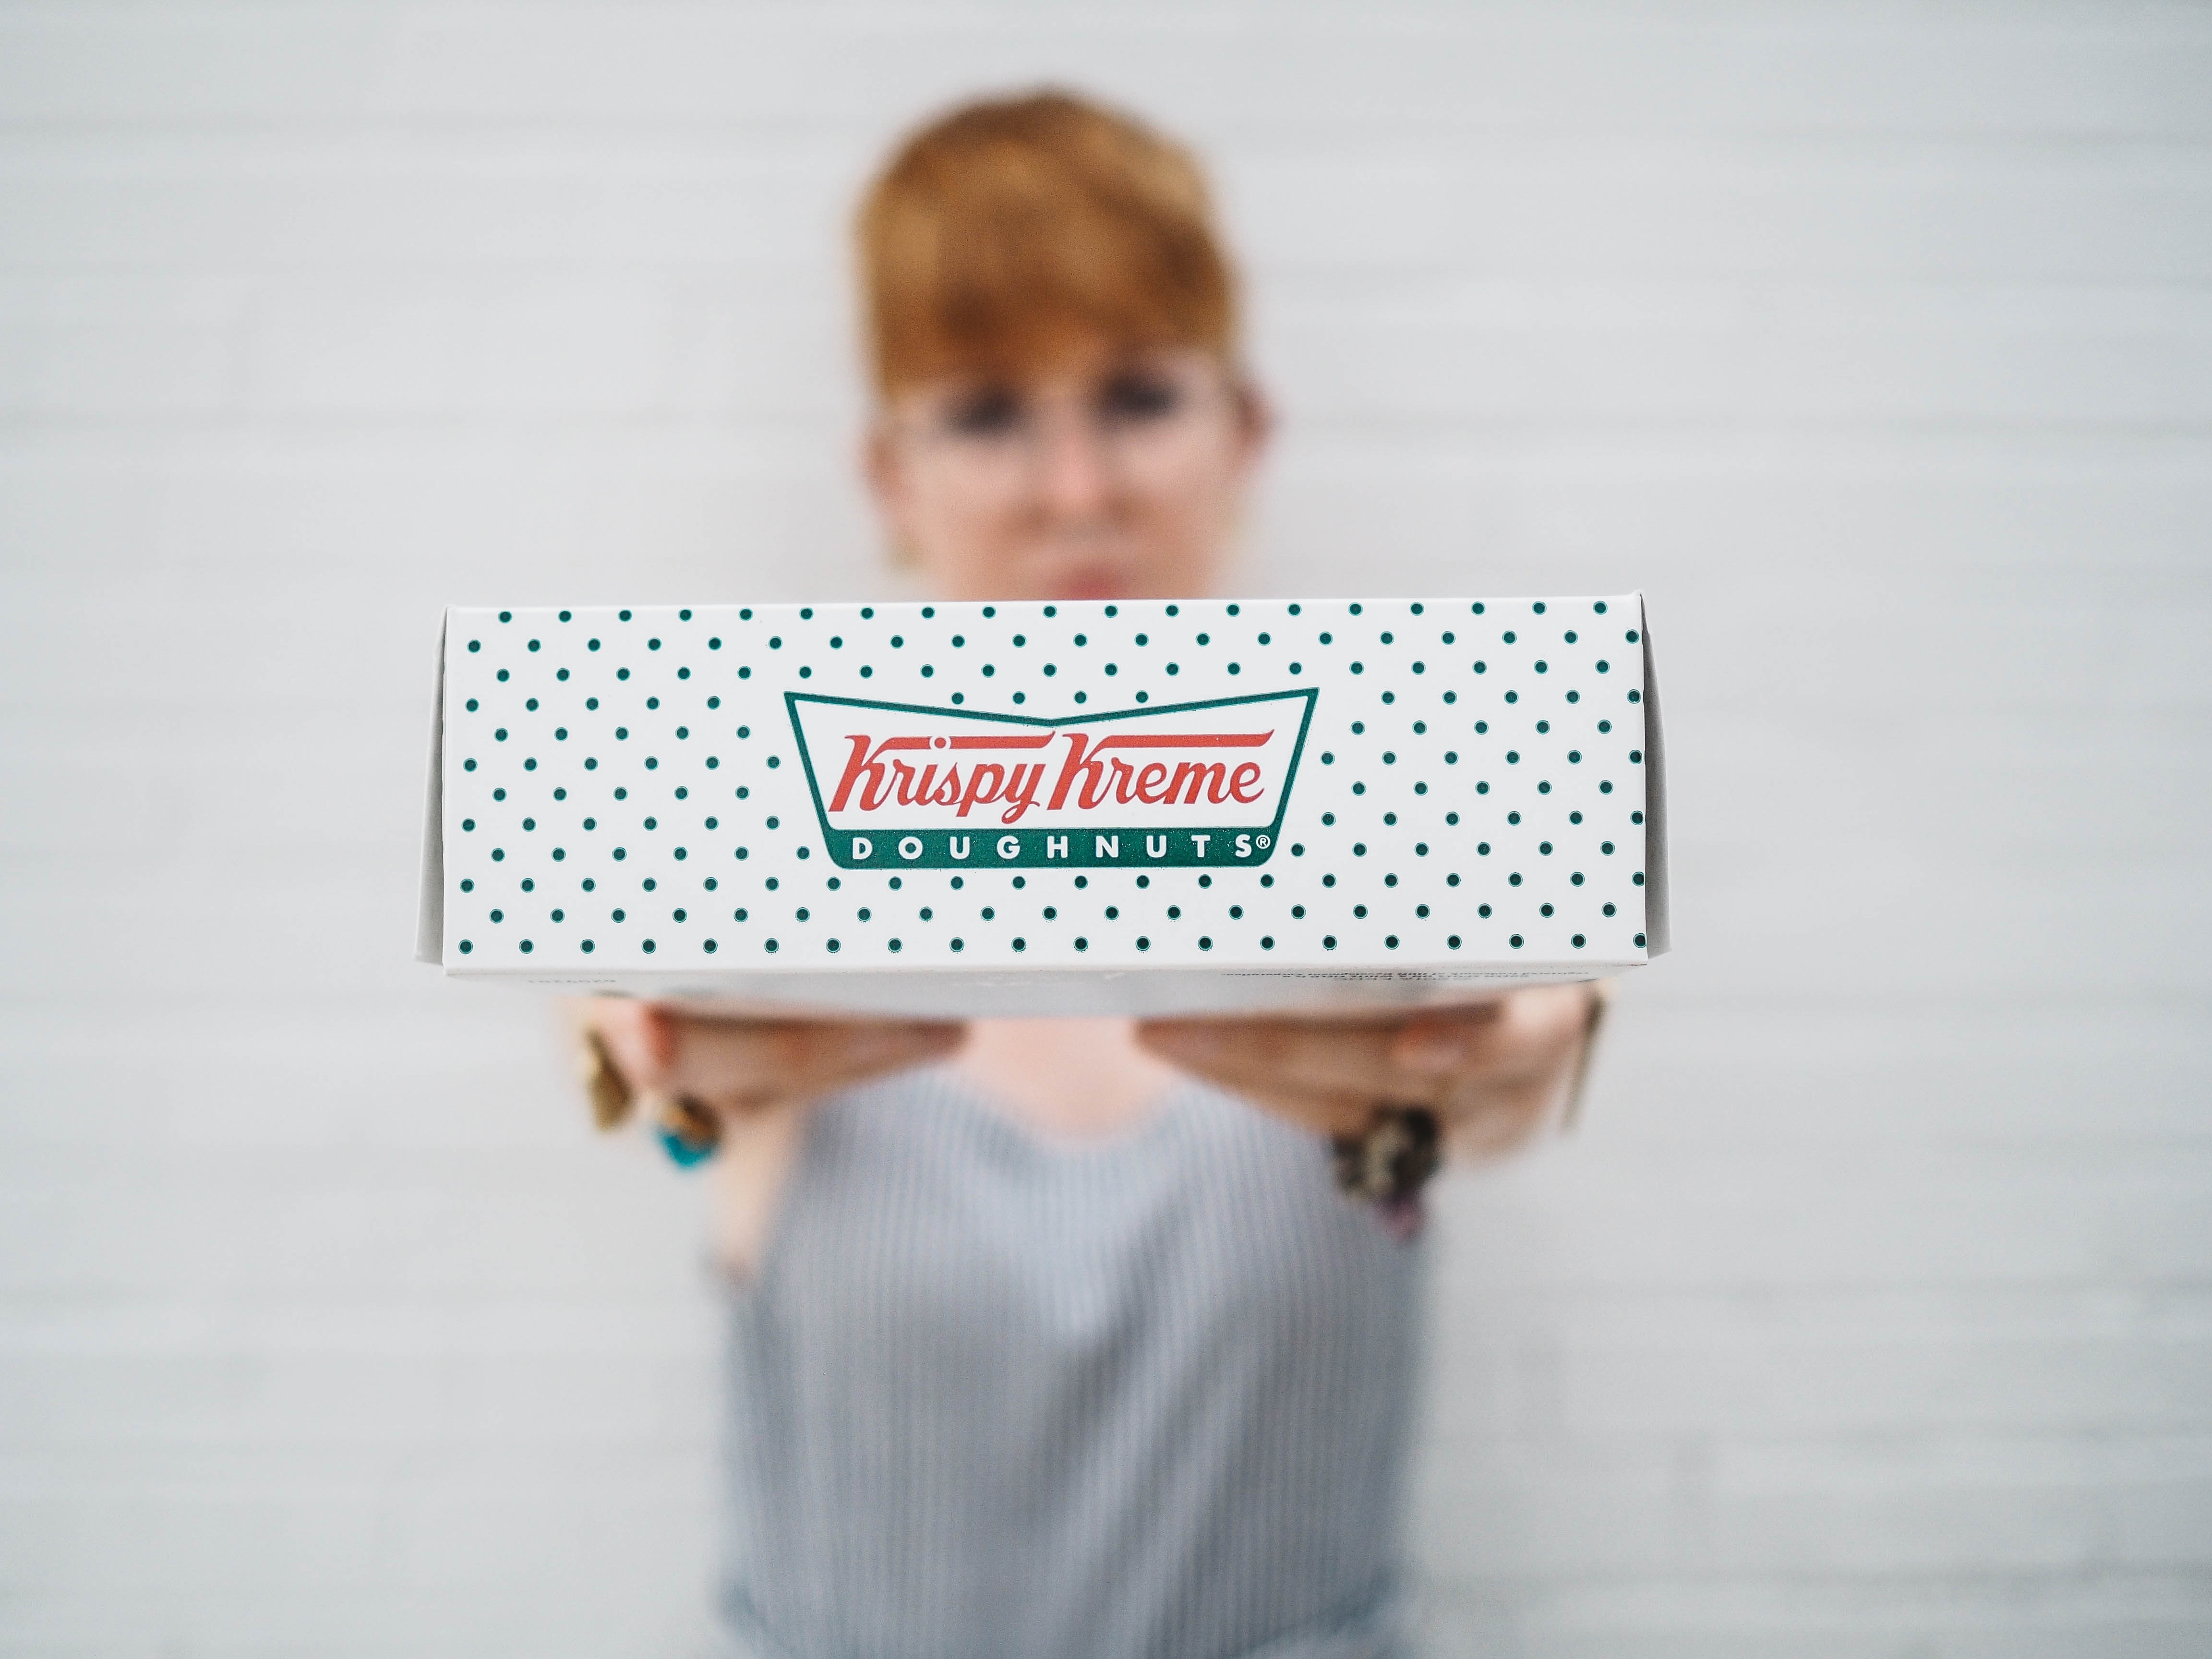 Be nice, give a donut.